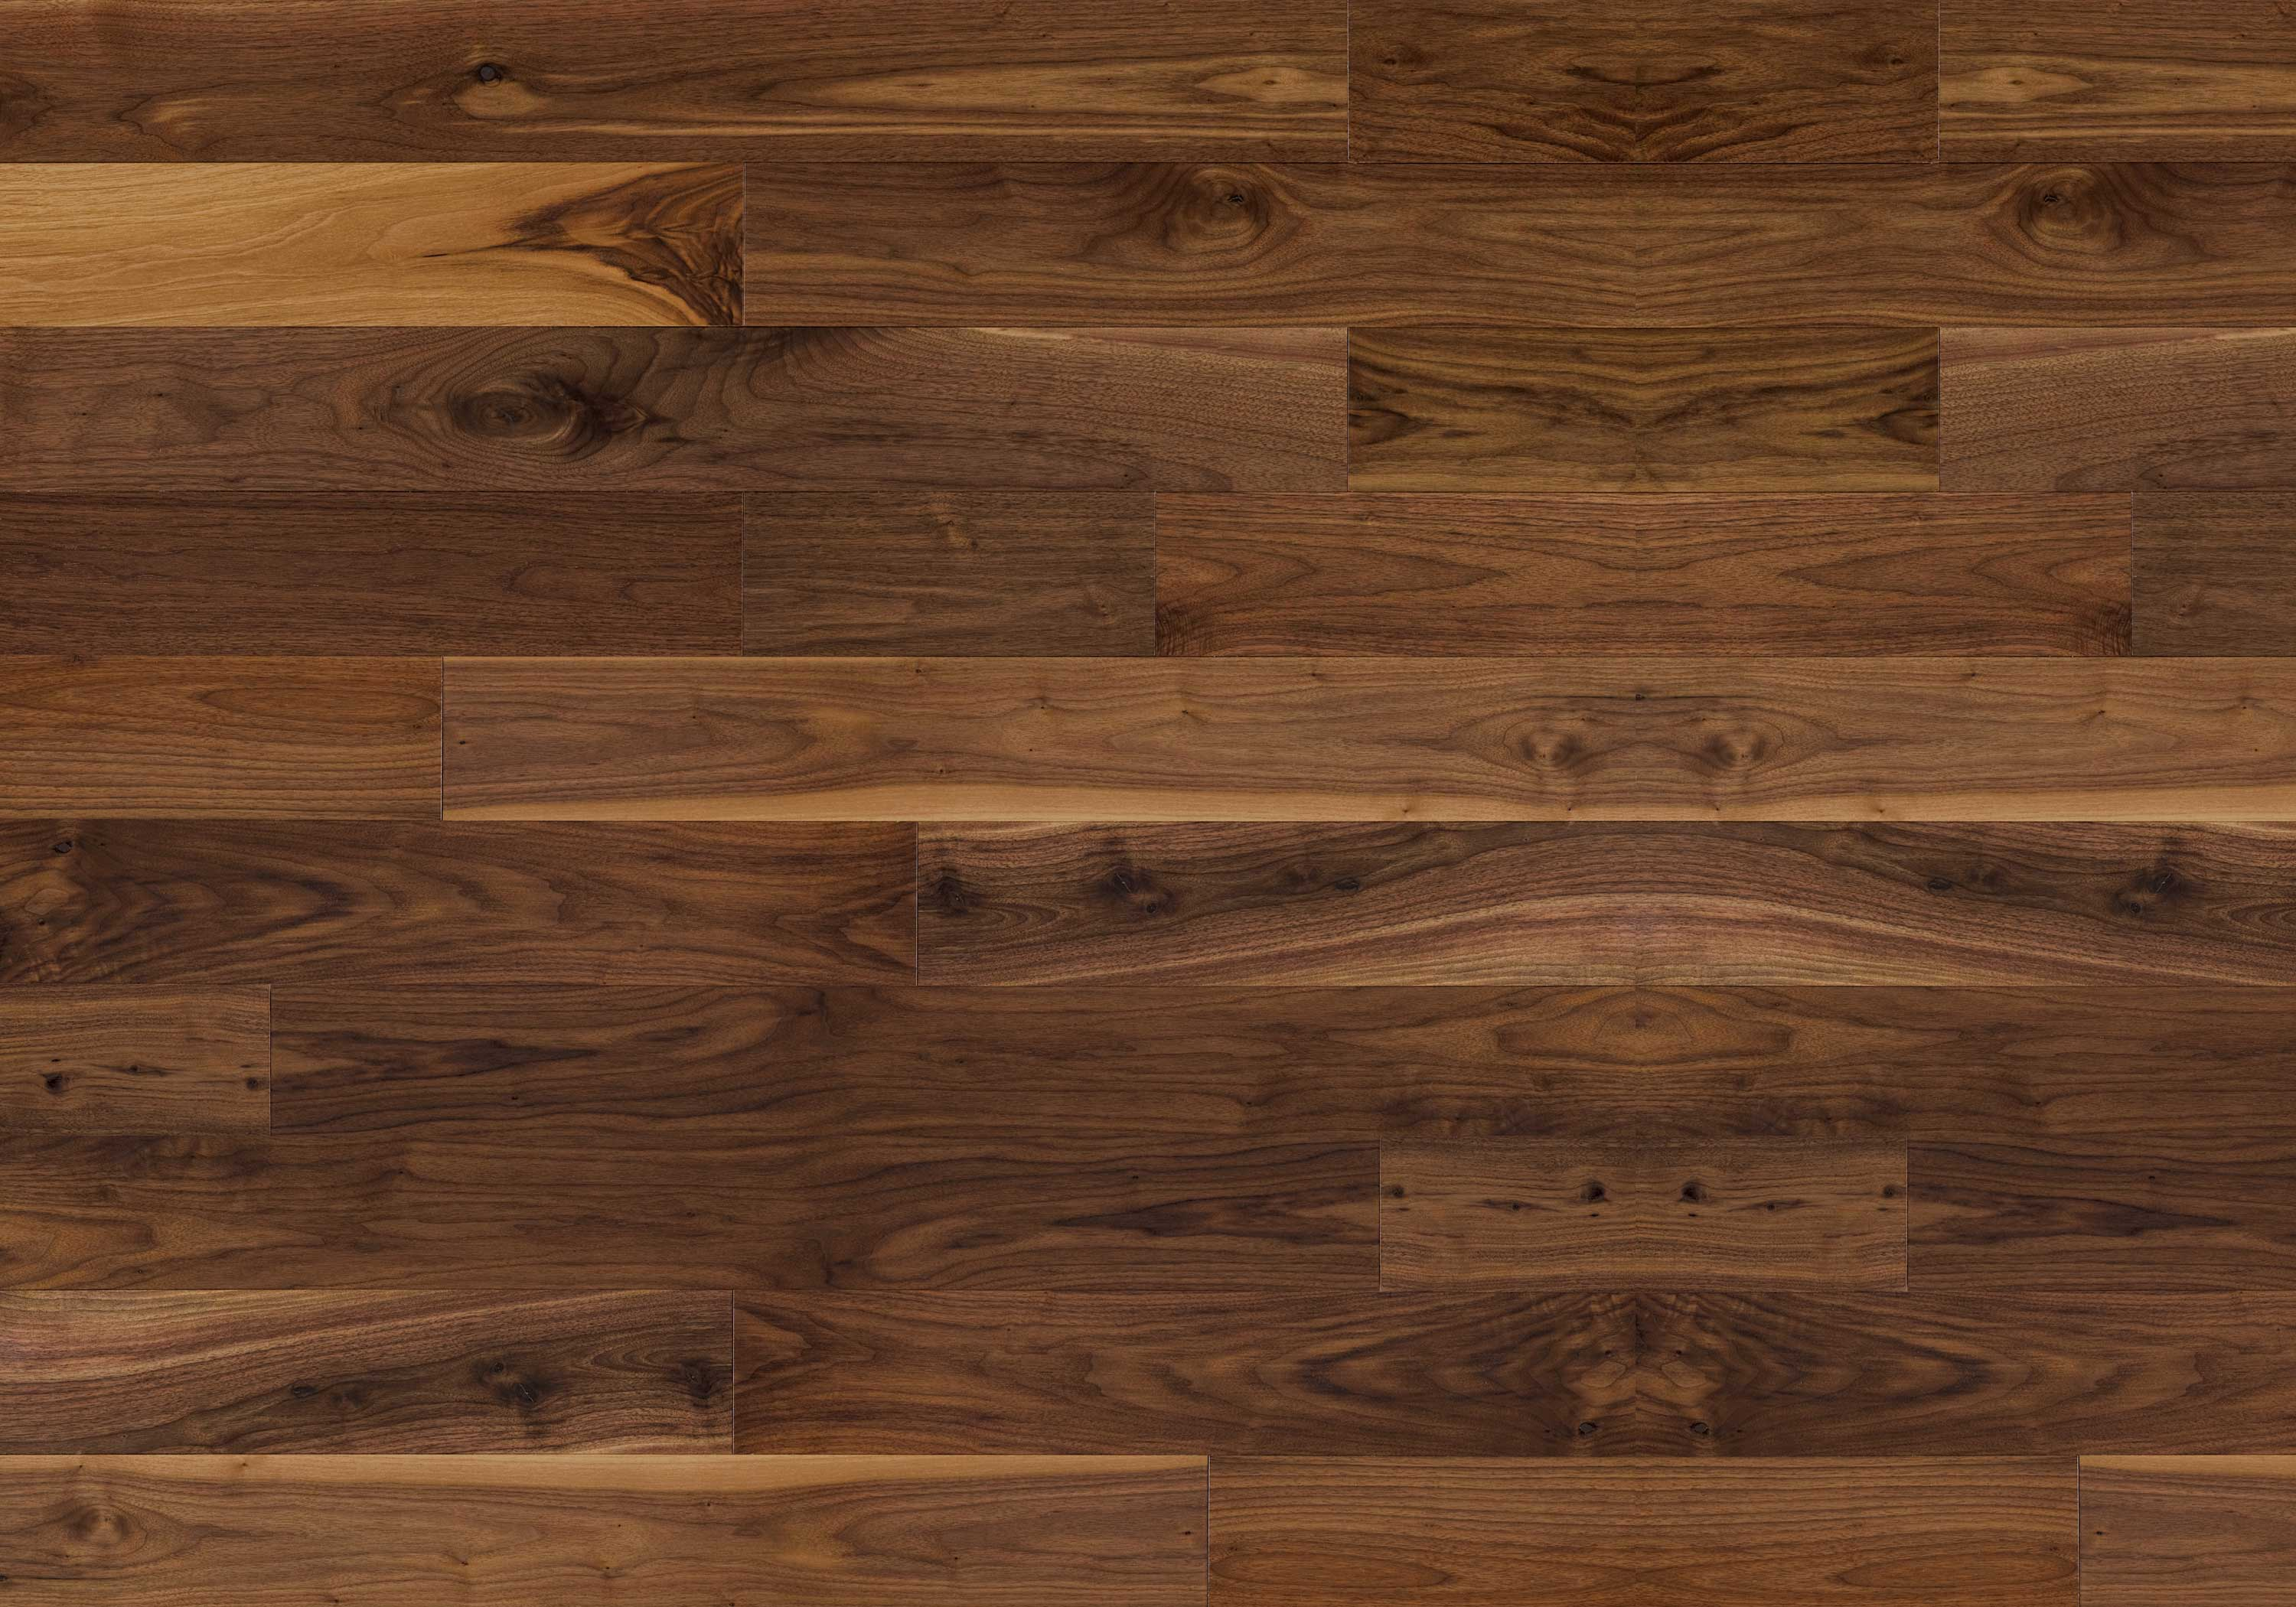 Black Walnut Hardwood Flooring Dark Brown Natural Exclusive